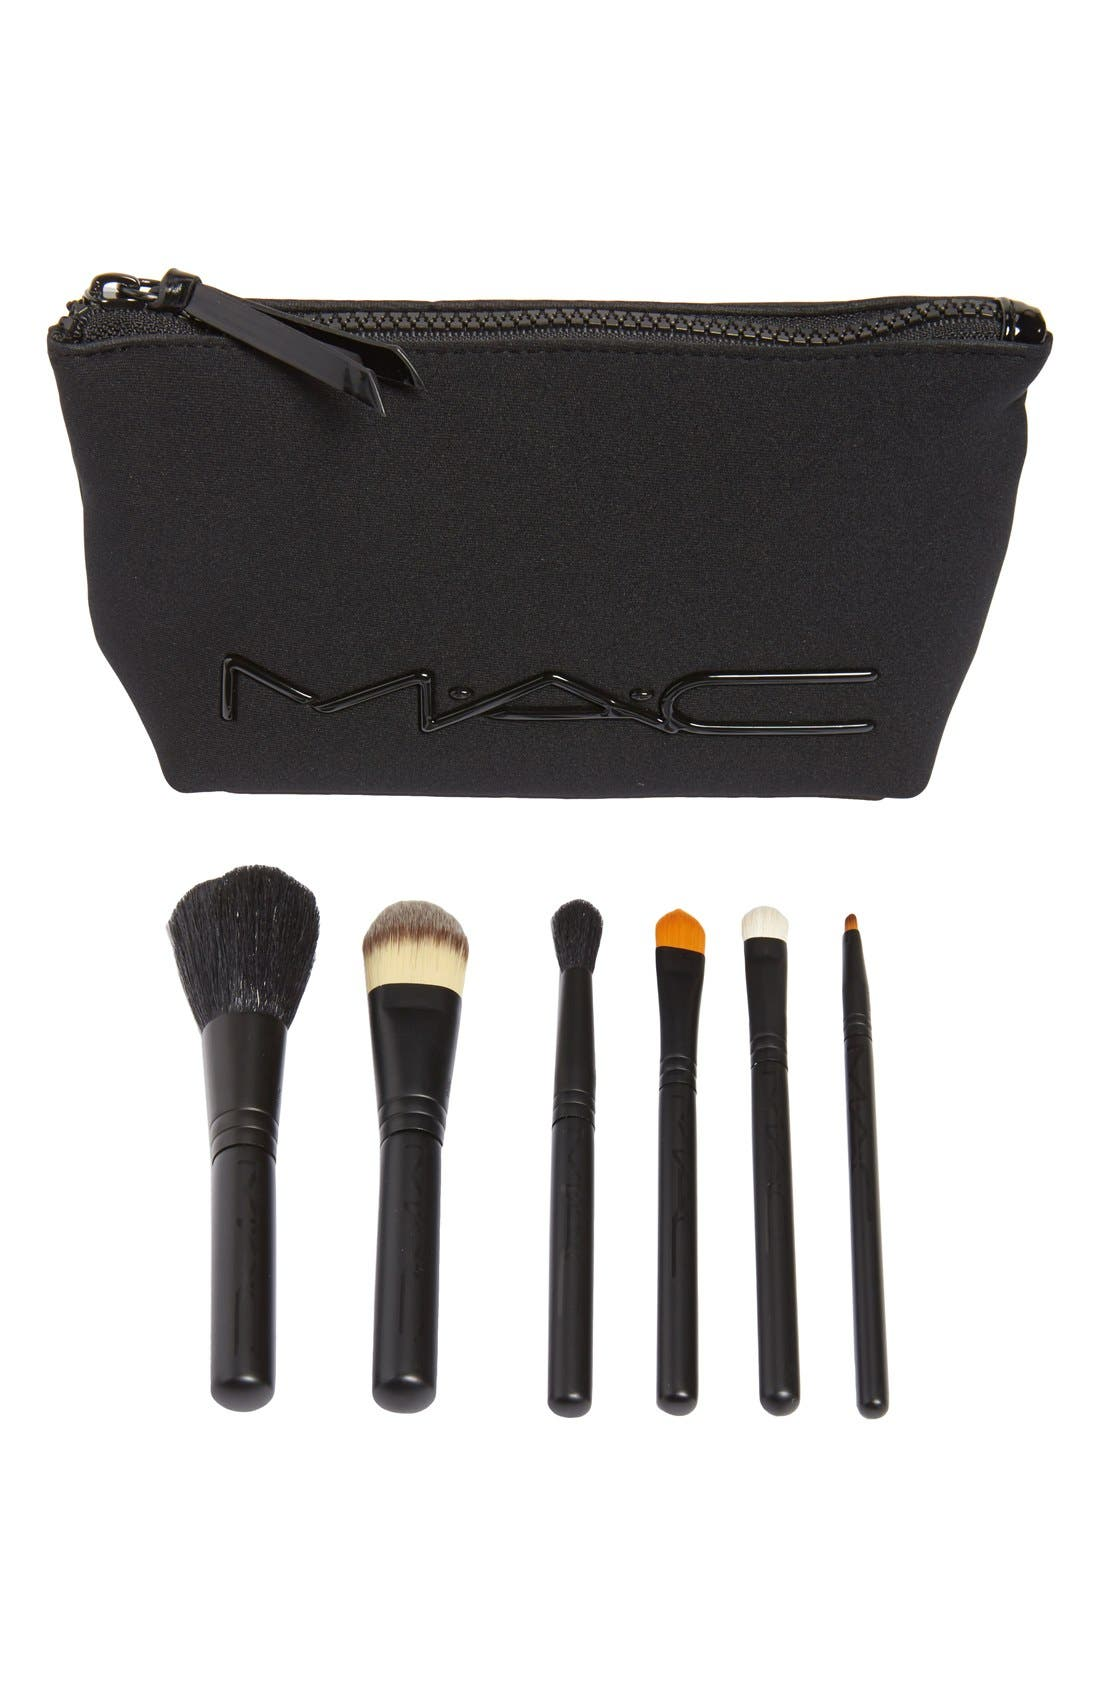 M·A·C 'Look in a Box - Basic' Travel Brush Kit,                             Main thumbnail 1, color,                             000